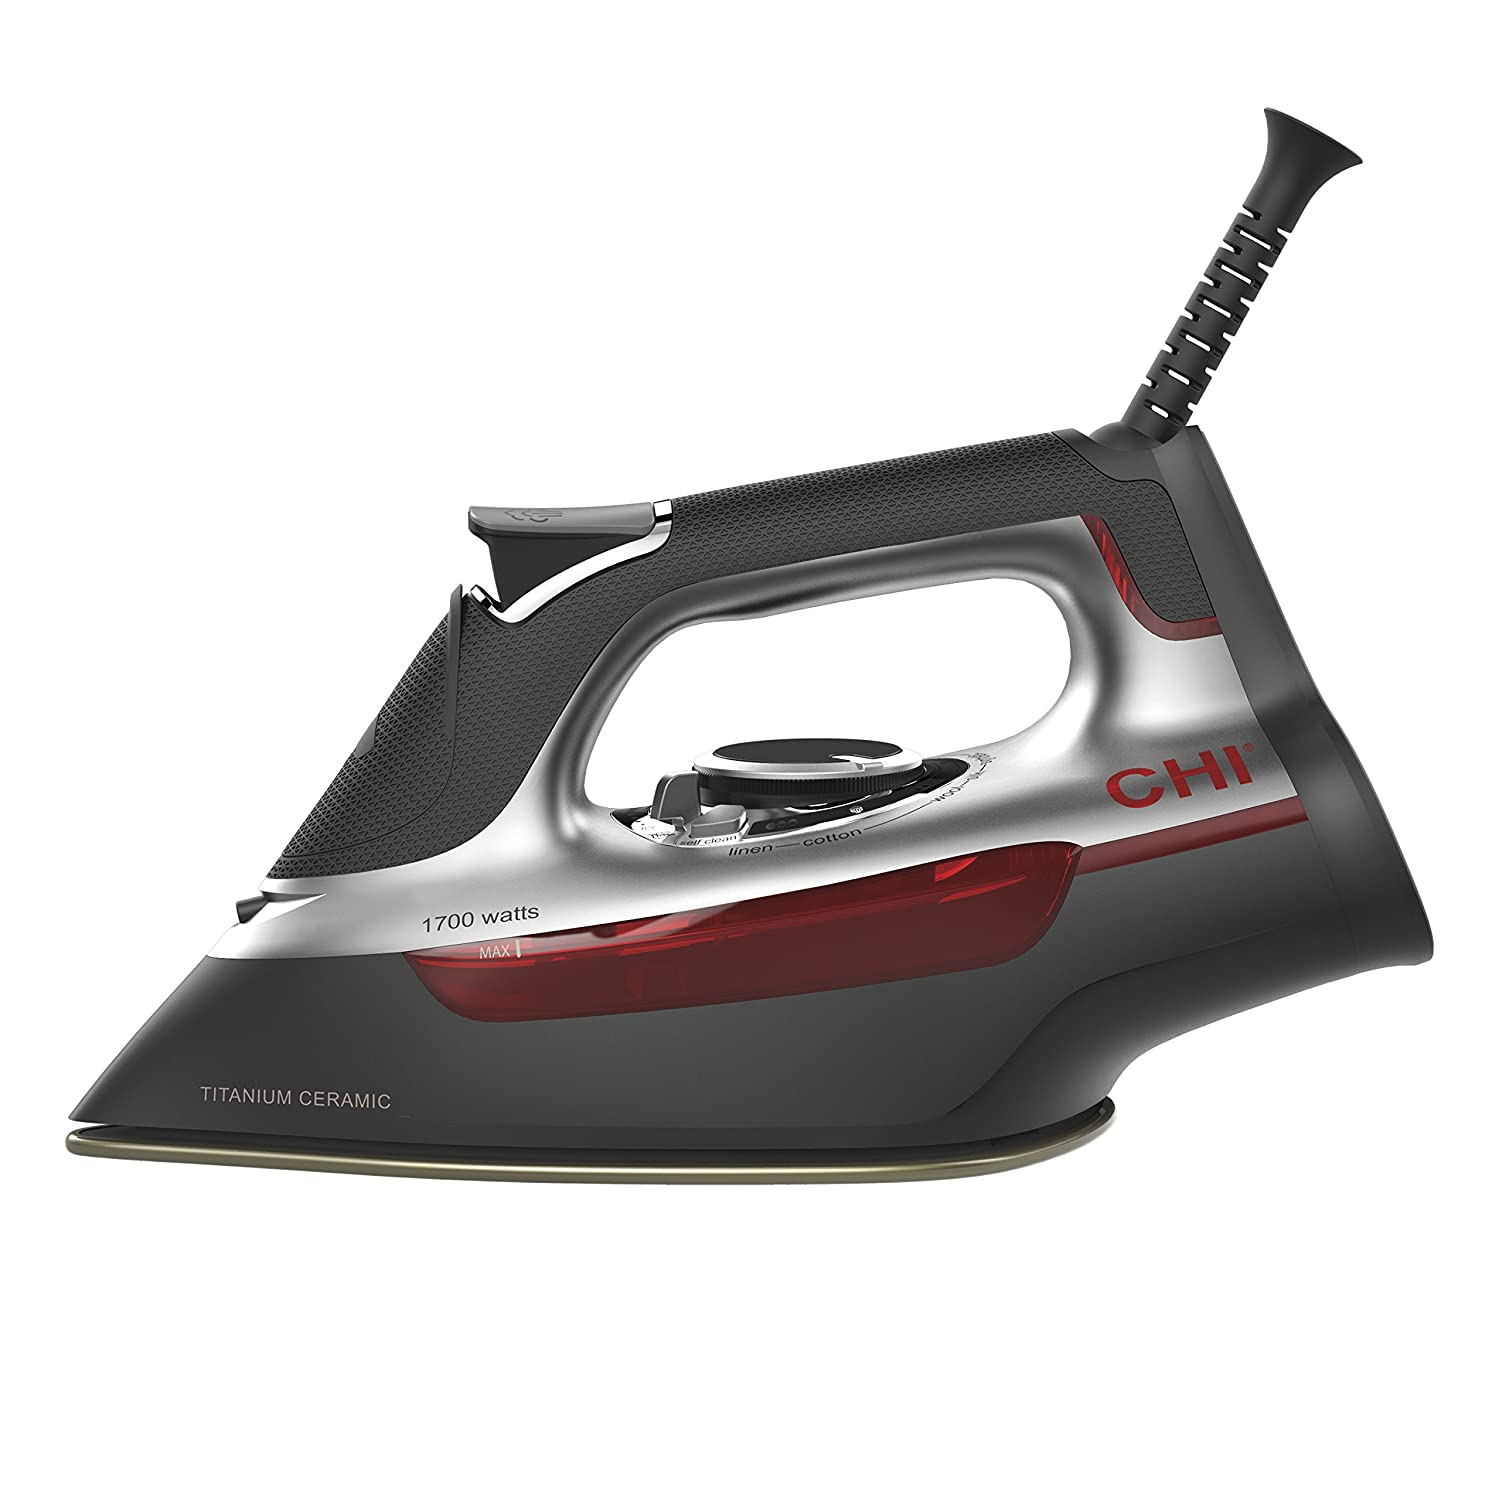 Top 10 Best Steam Irons With Auto Shut-Off